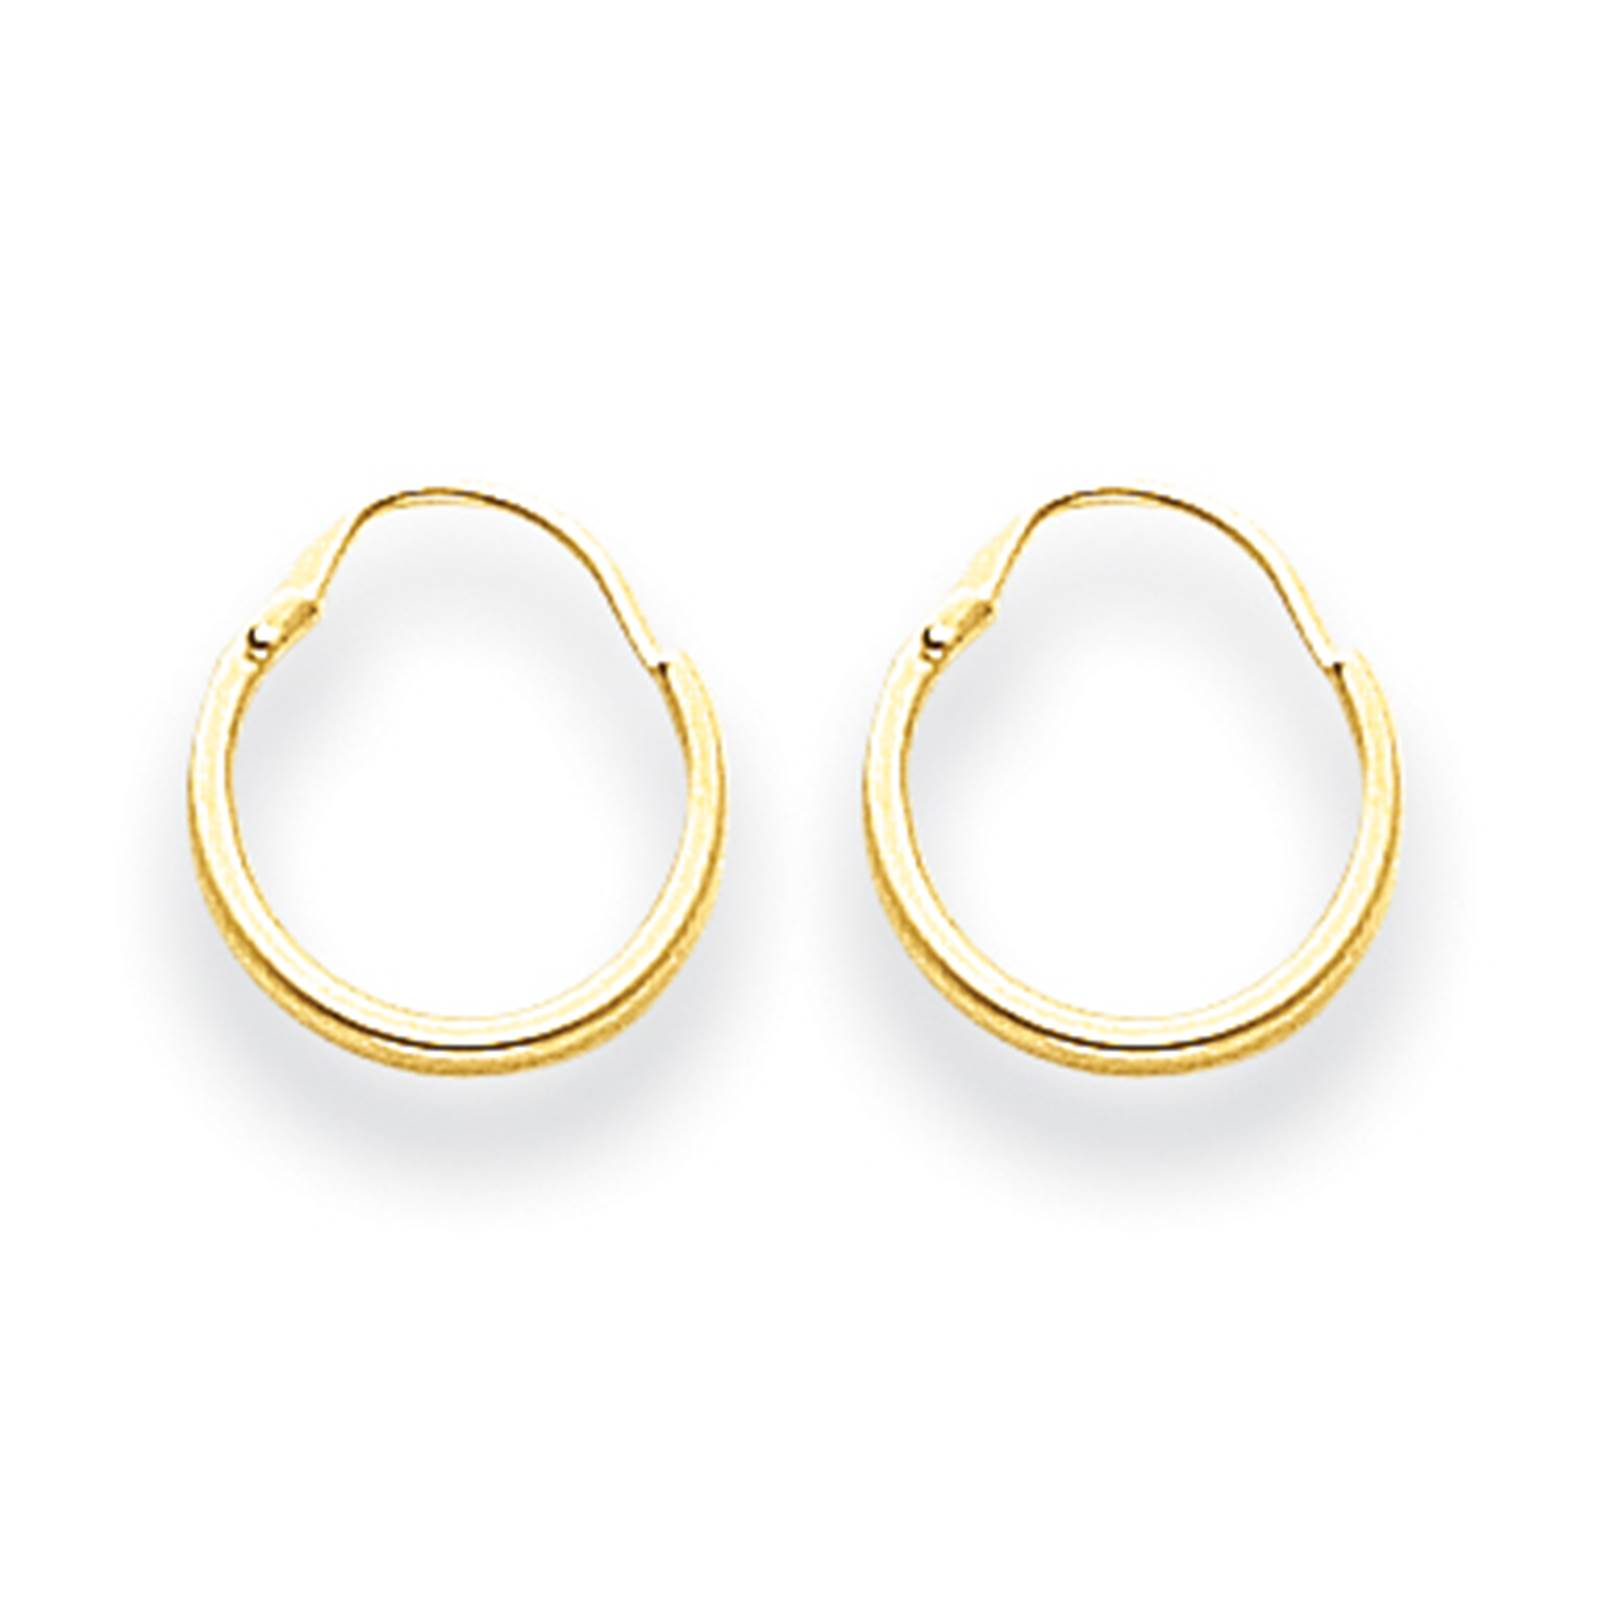 Madi K Childrens 14k Yellow Gold 1mm Polished & Hollow Hoop Earrings